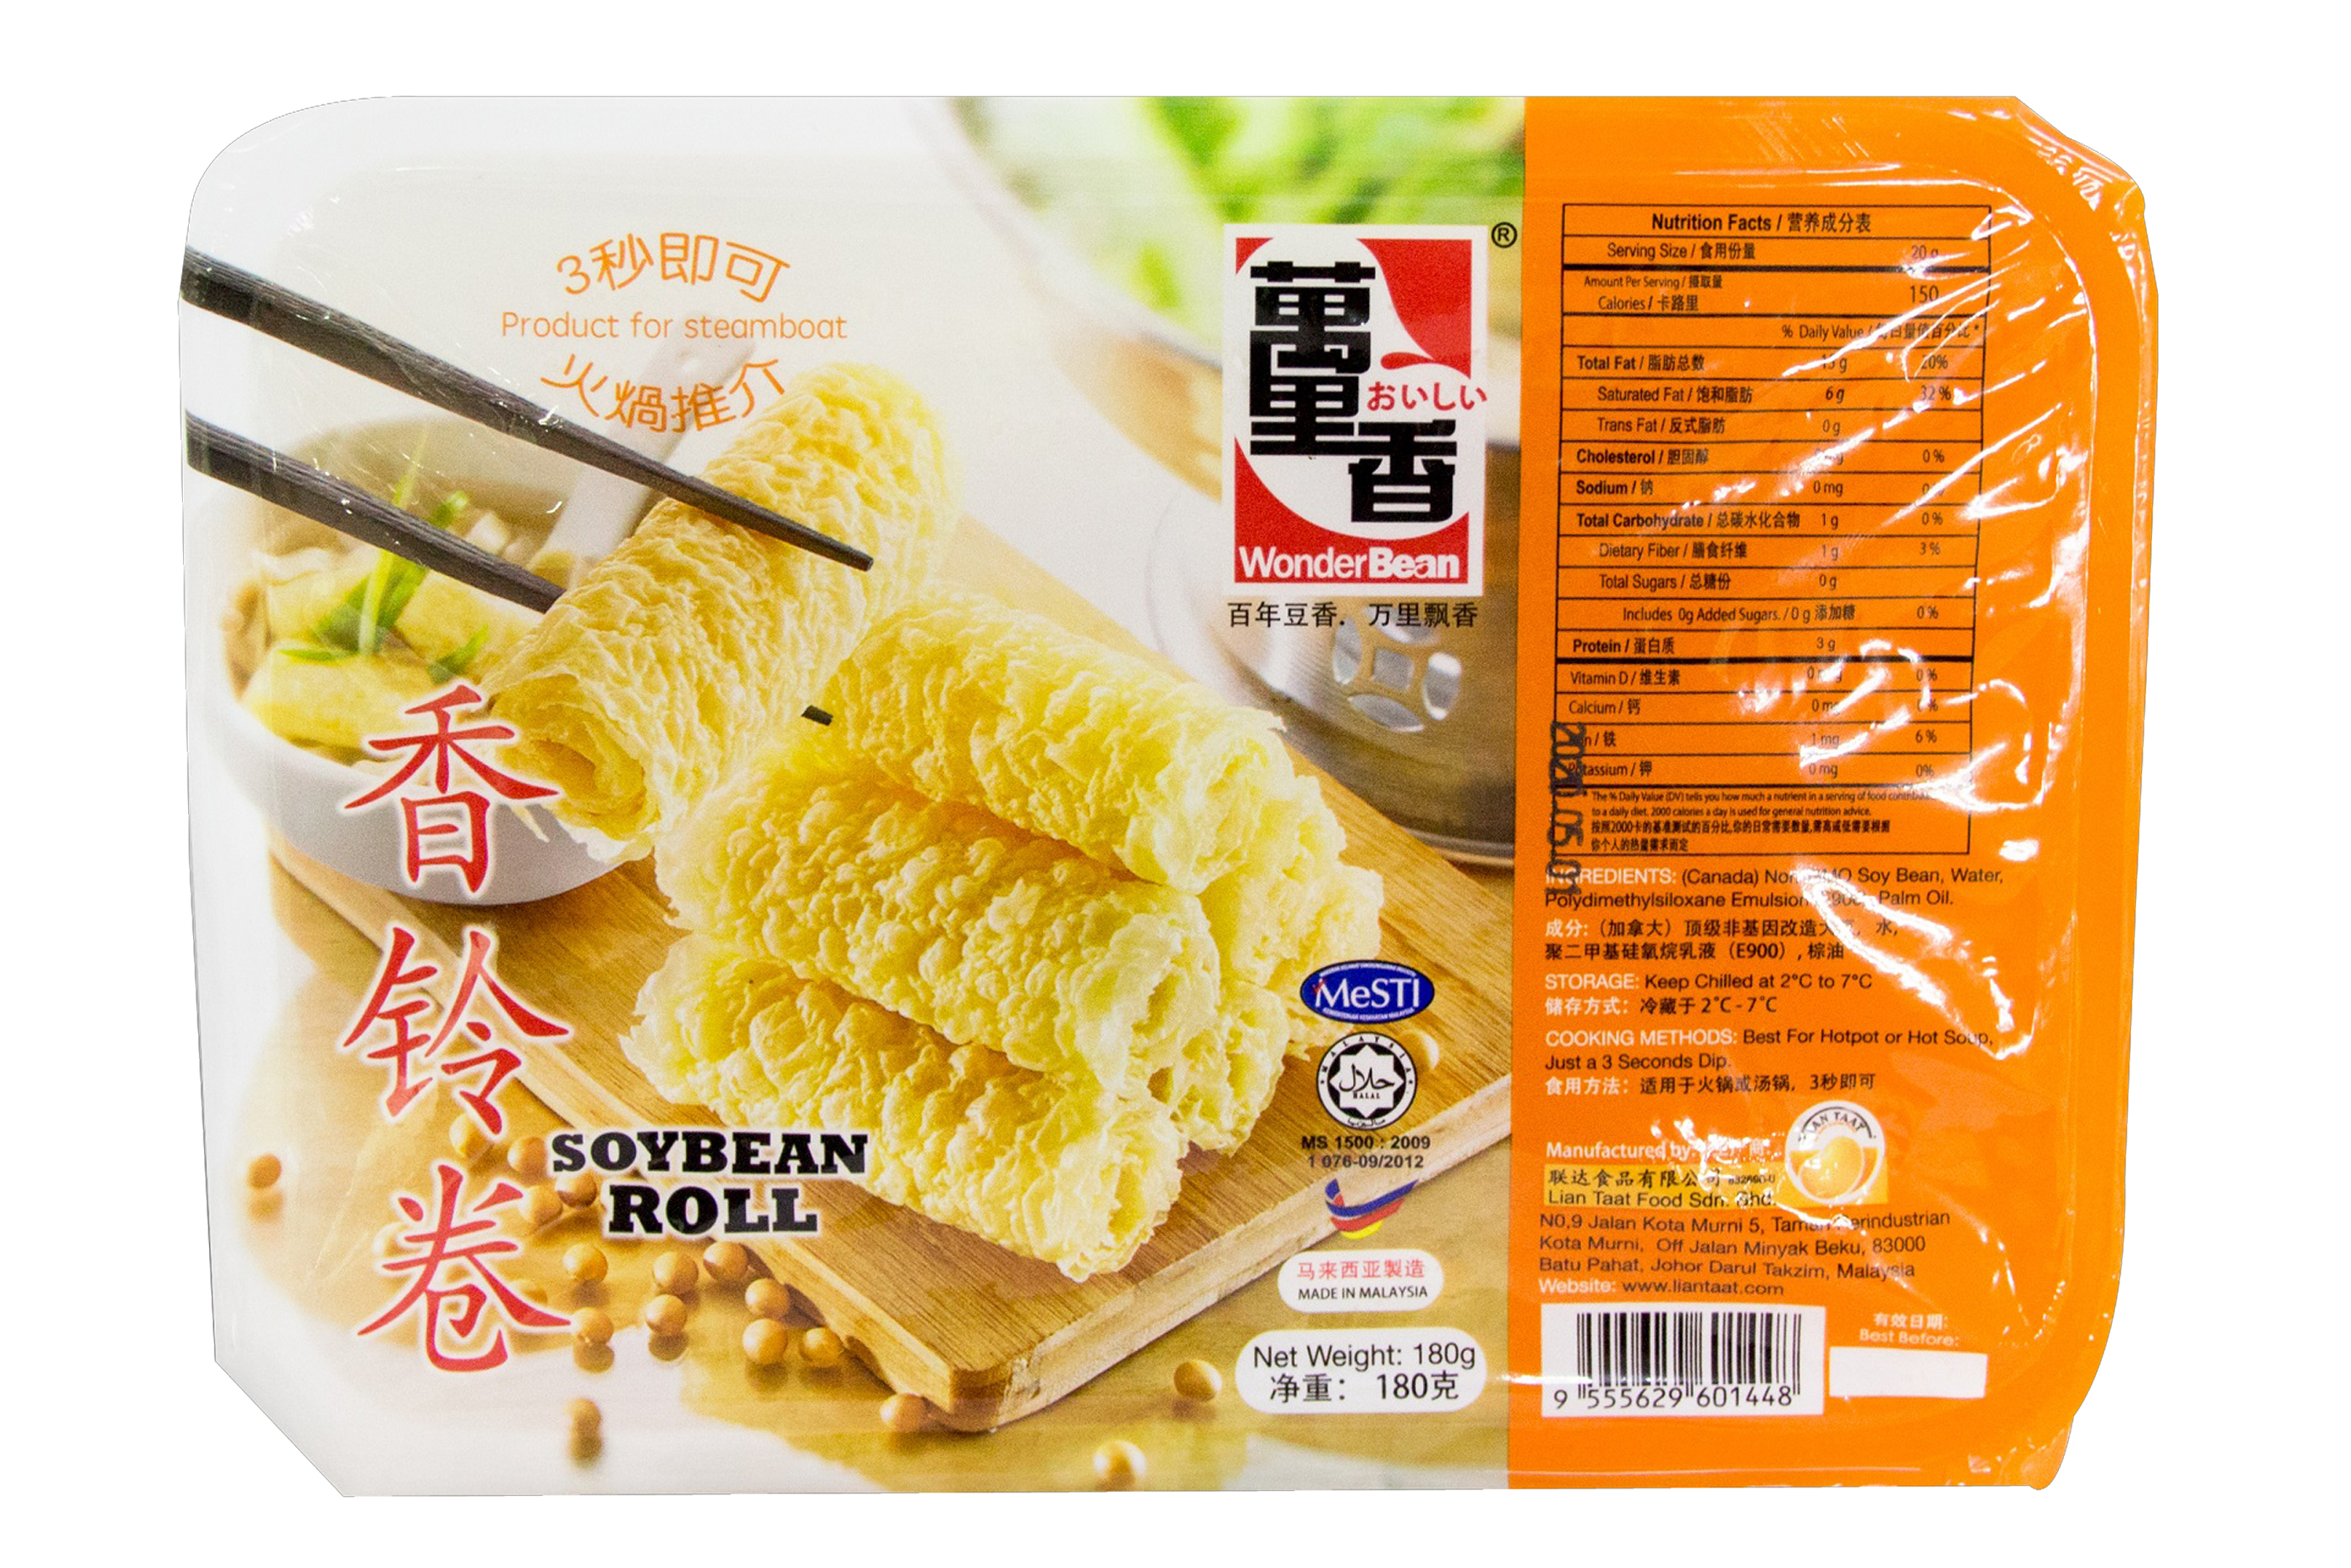 Image Soybean Ring Roll 香铃卷